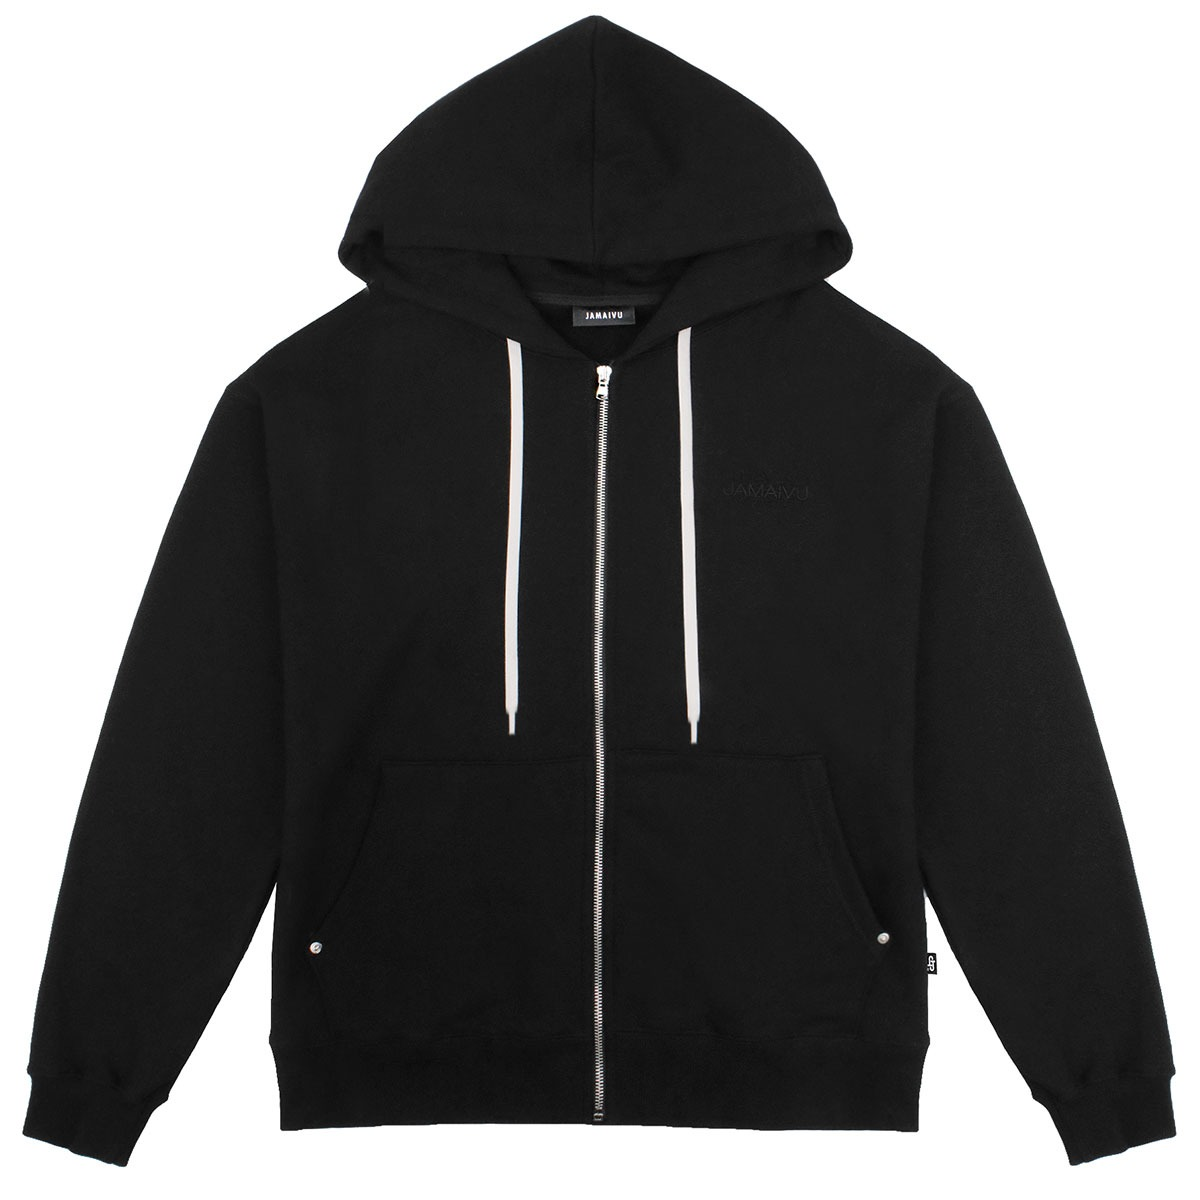 "FIFTH SEASON ""JAMAIVU EMBROIDERED ZIPUP HOODIE"" #BLACK"